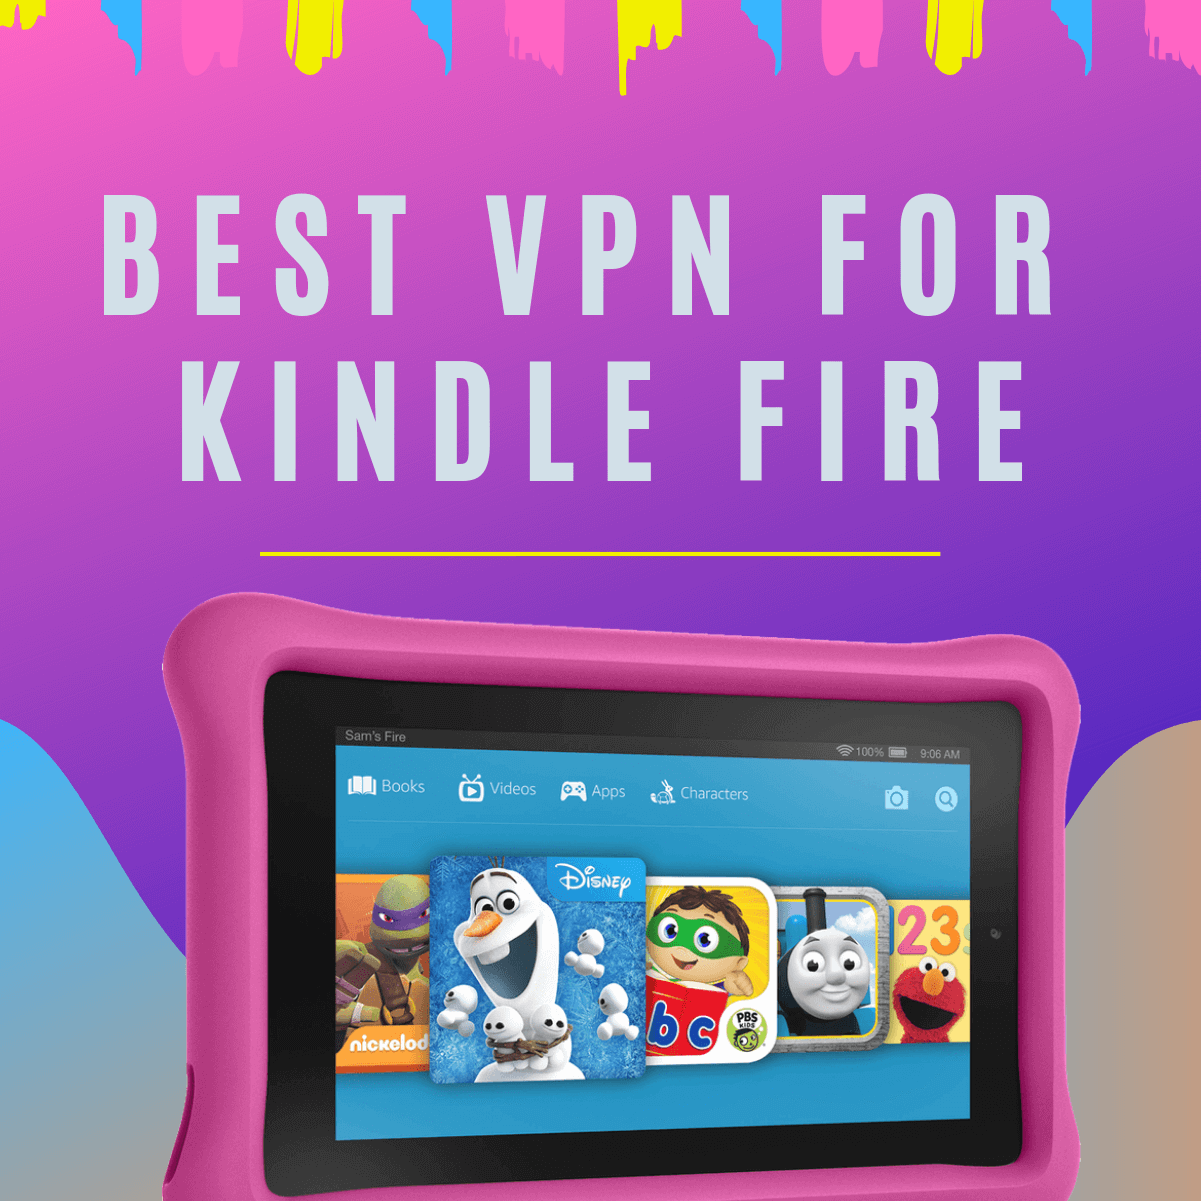 Best VPN for Kindle Fire - Access Any Geo-blocked apps on